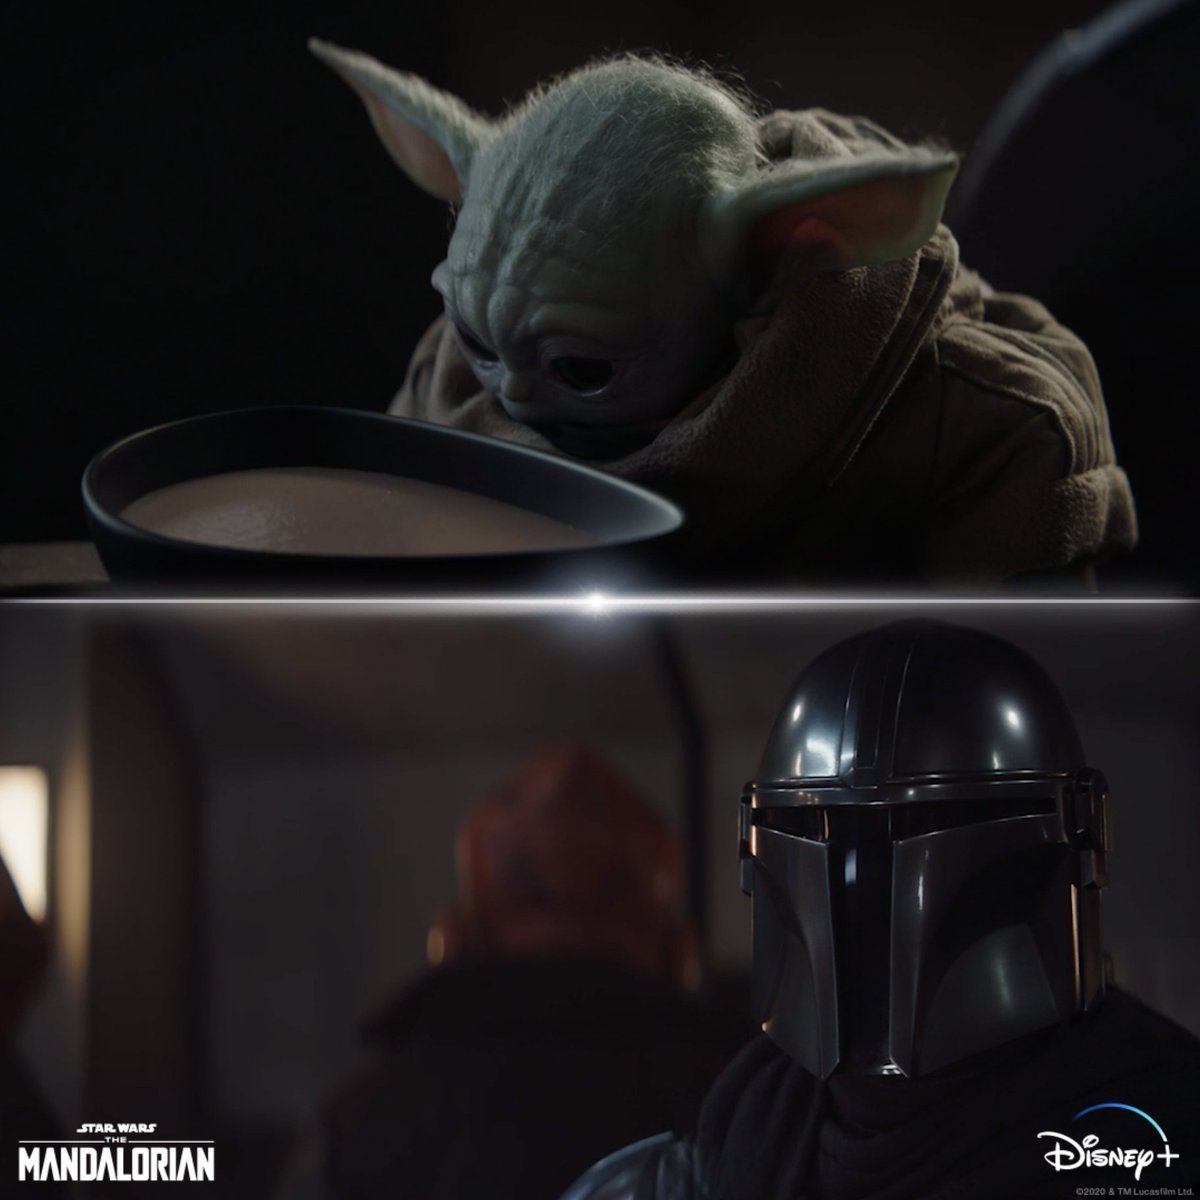 Don't play with your food. Chapter 11 of #TheMandalorian is now streaming on #DisneyPlus.